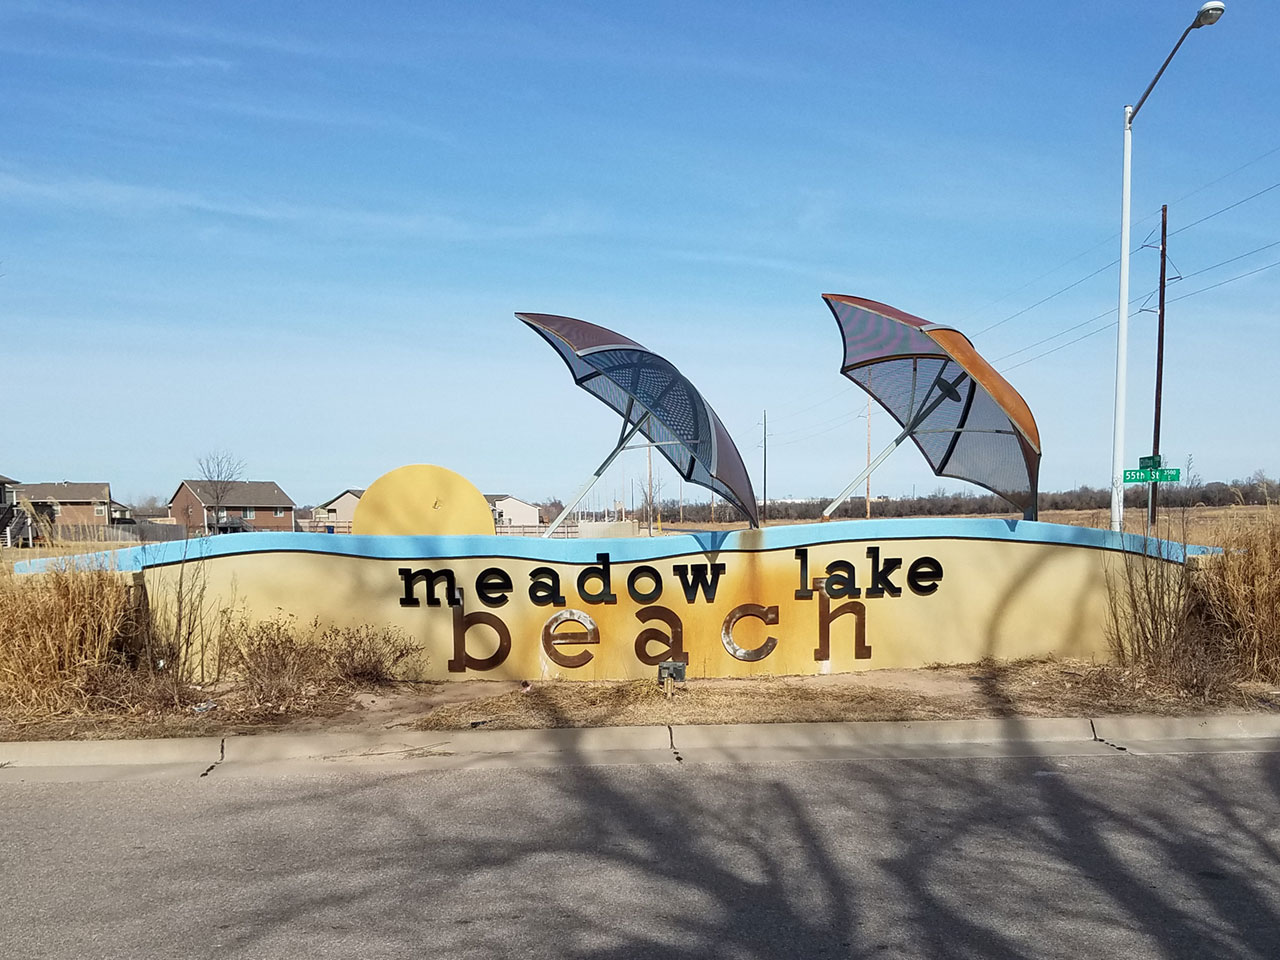 Meadow Lake Beach community